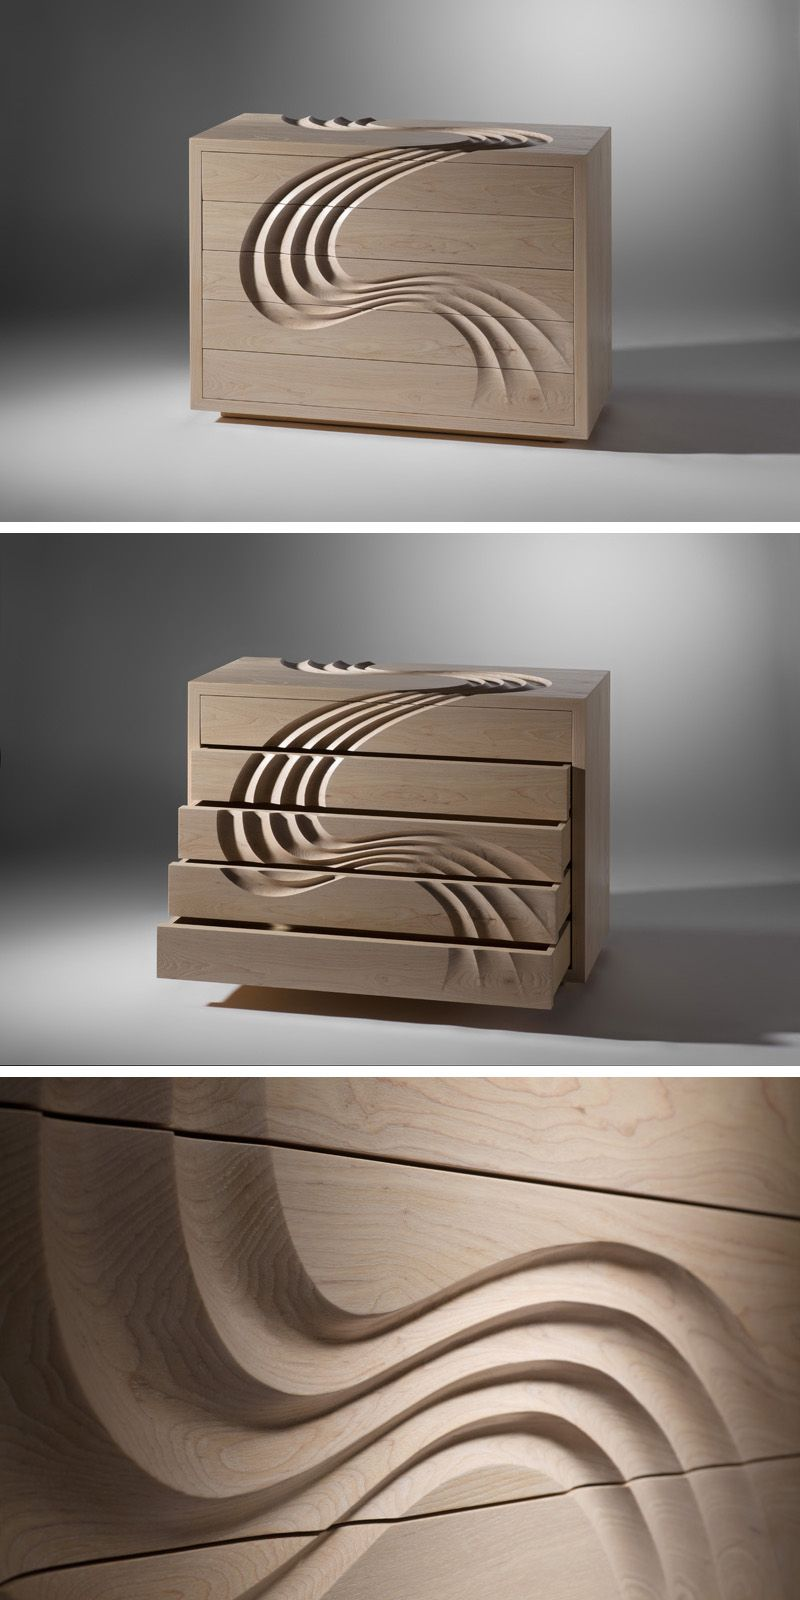 Martin Gallagher Designs A Chest Of Drawers With Hand Sculpted Channels